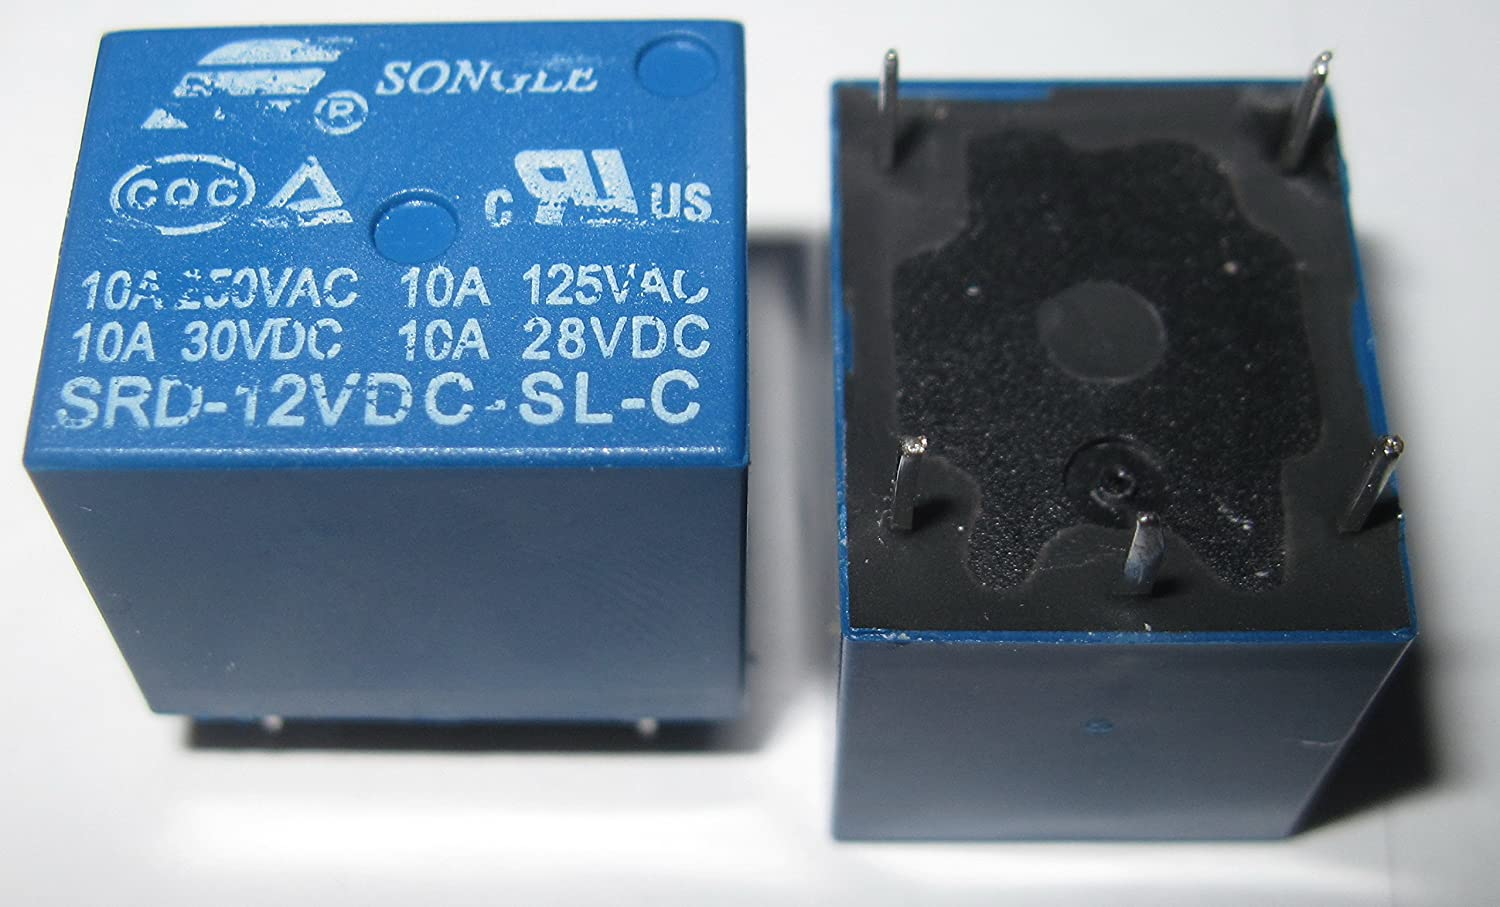 2 Pieces Songle Power 12VDC Household Appliance Relay SRD12VDCSLC